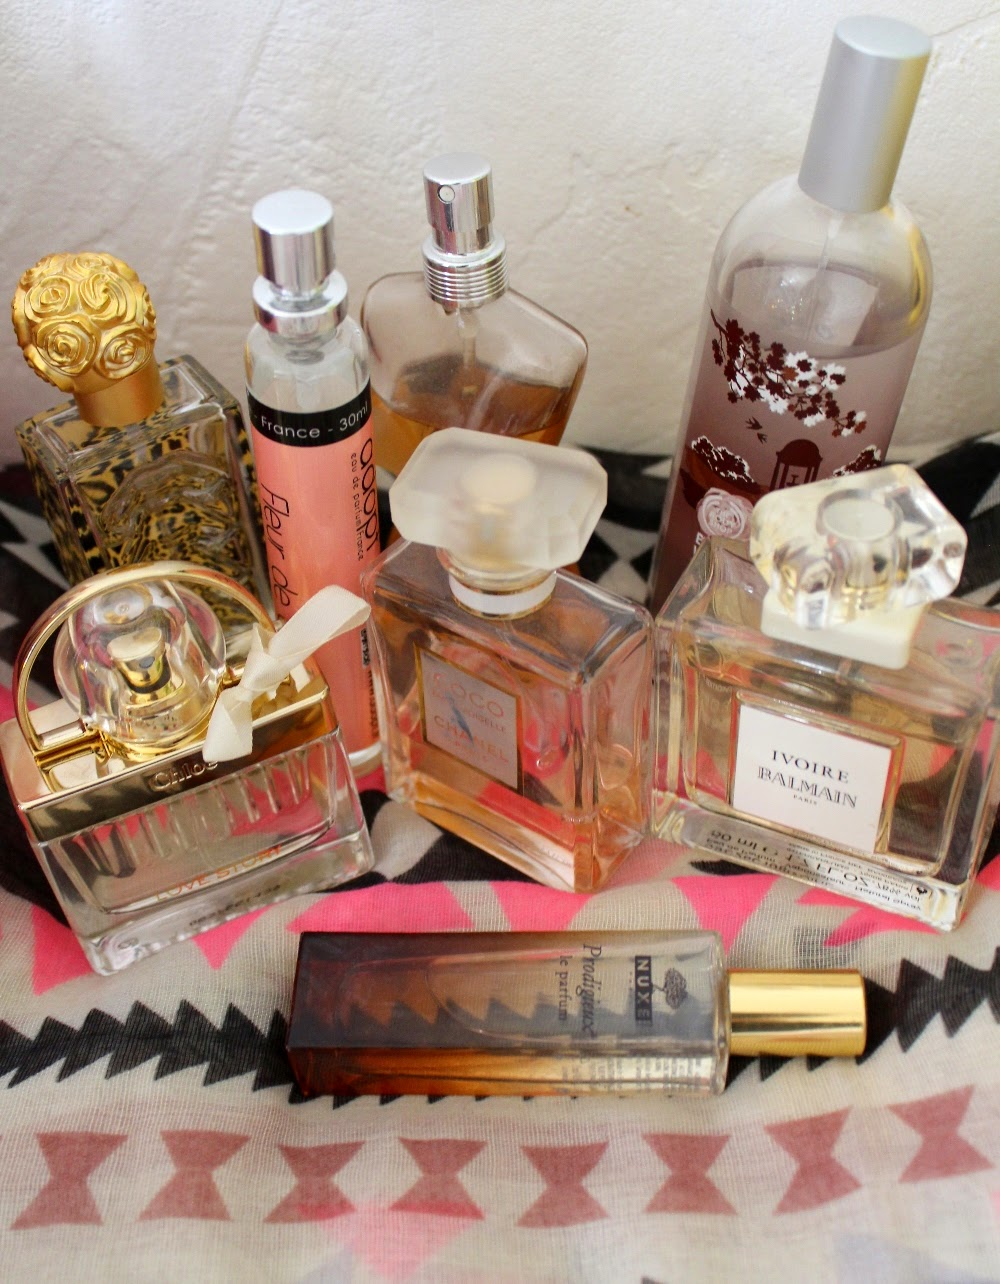 http://cosmetic-madness.blogspot.com/2015/02/defi-du-lundi-mes-parfums.html